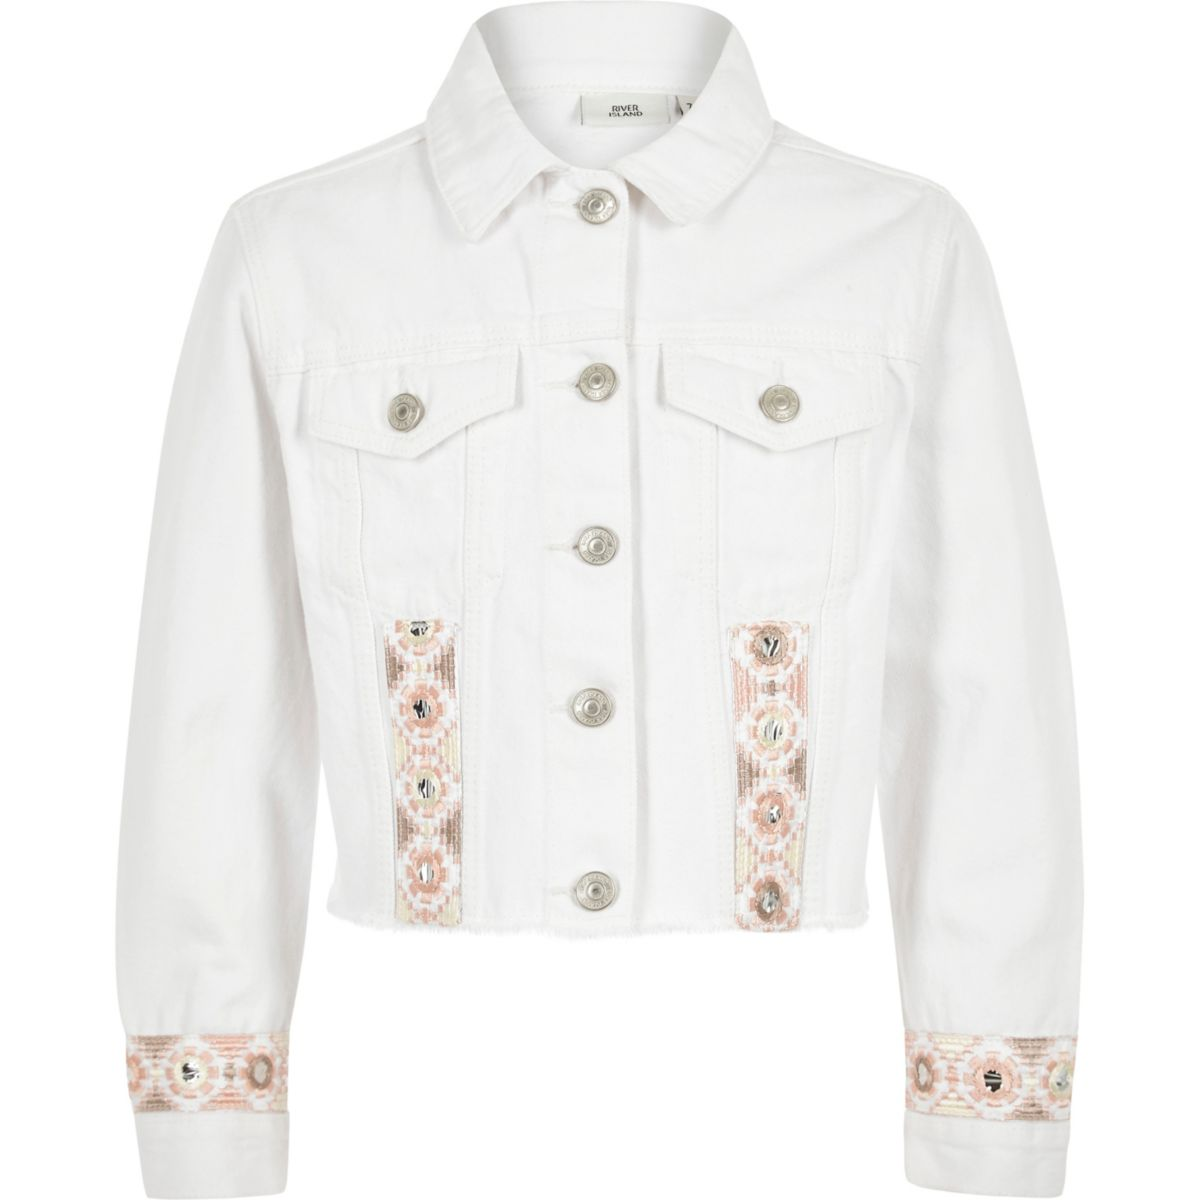 competitive price 6472c a2e5e Girls white embroidered trim denim jacket